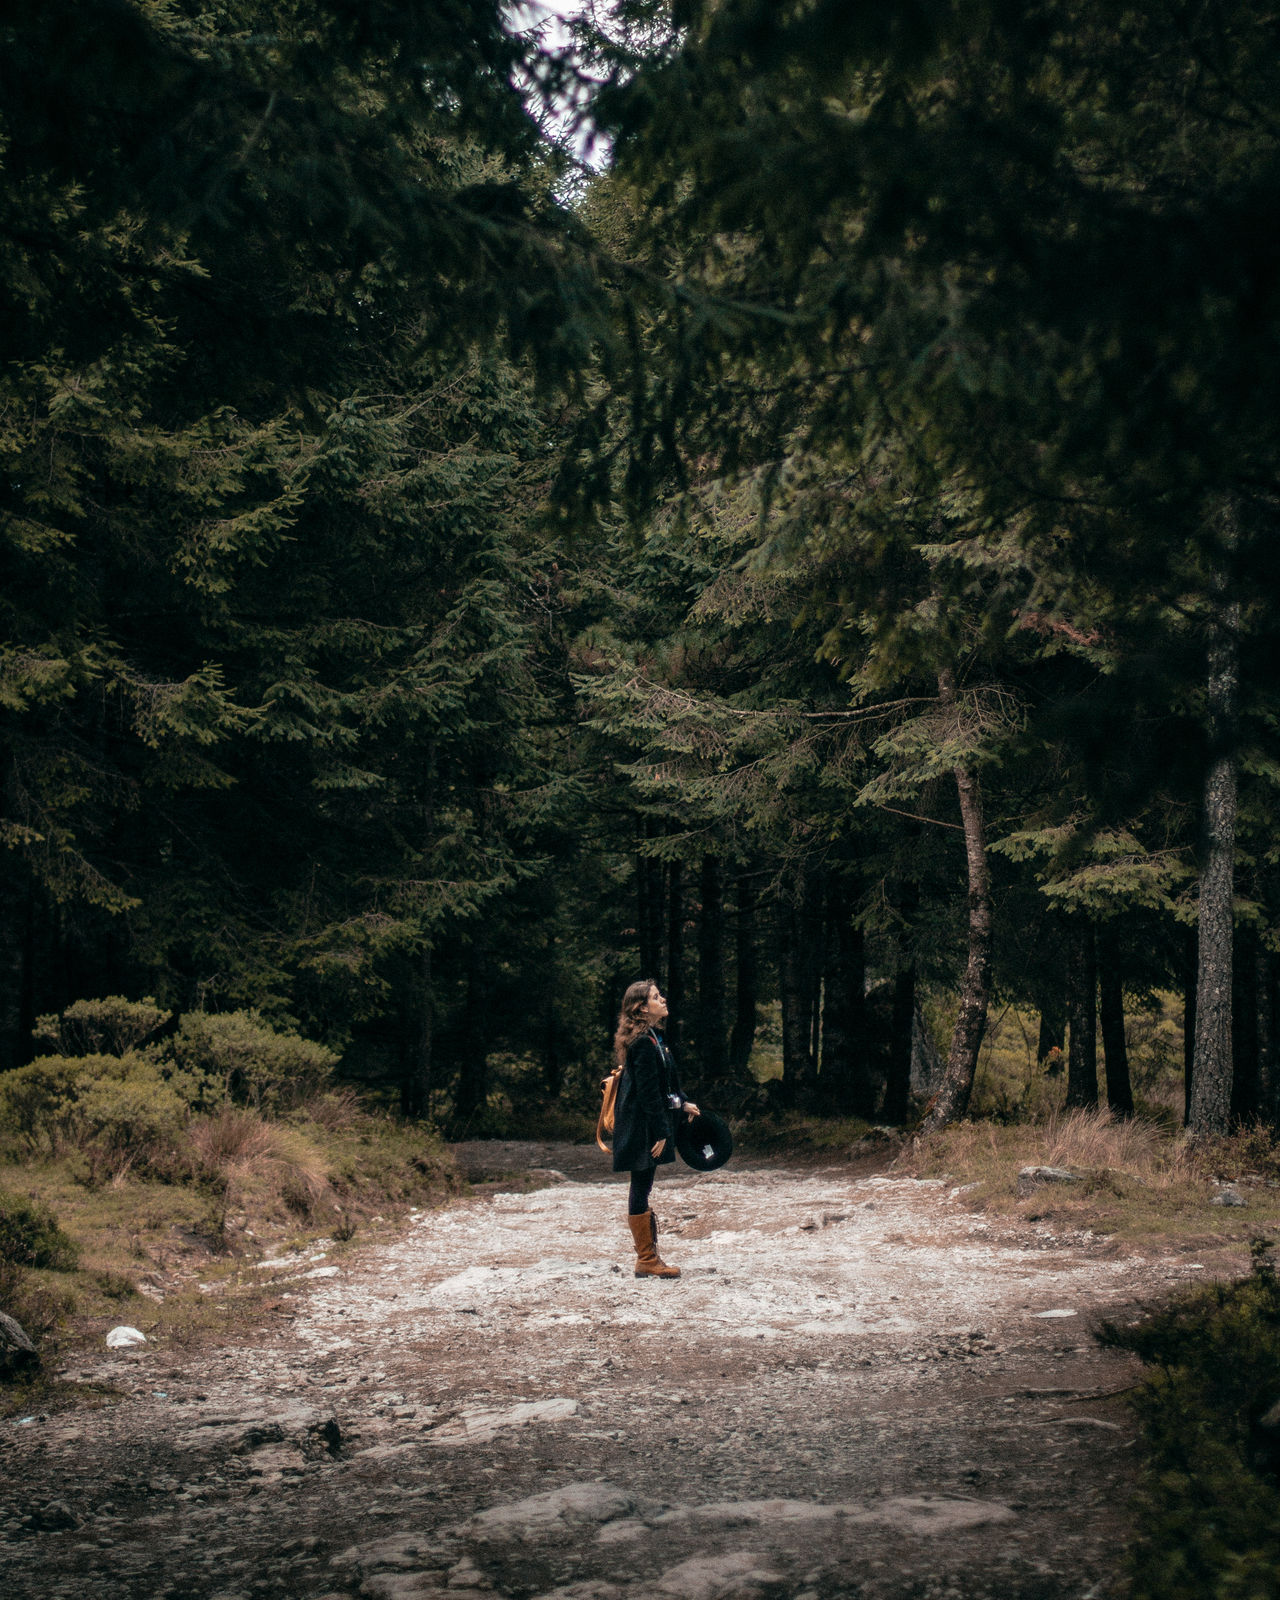 Day Daydream Daydreaming Daylight Forest Girl One Person Outdoors Walking